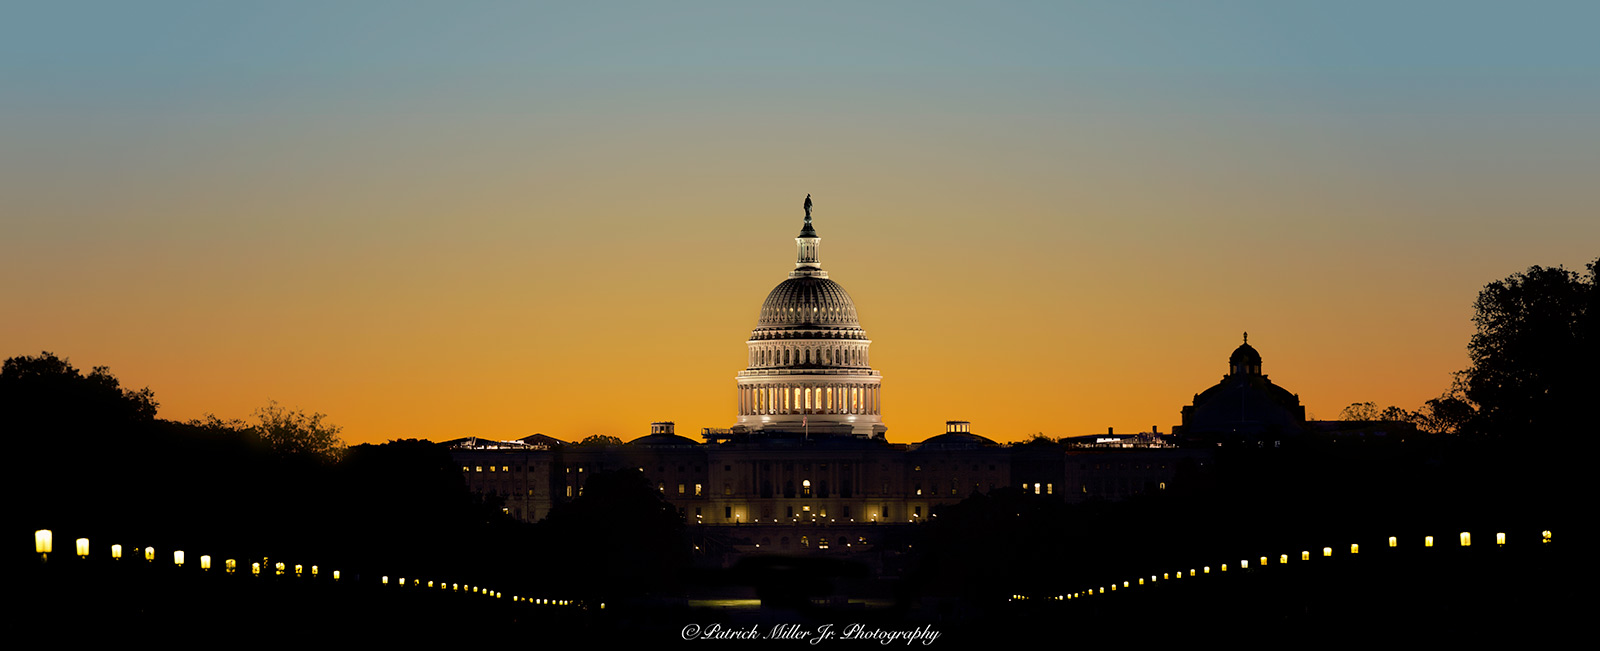 US Capitol Silhouette at sunrise Washington, DC